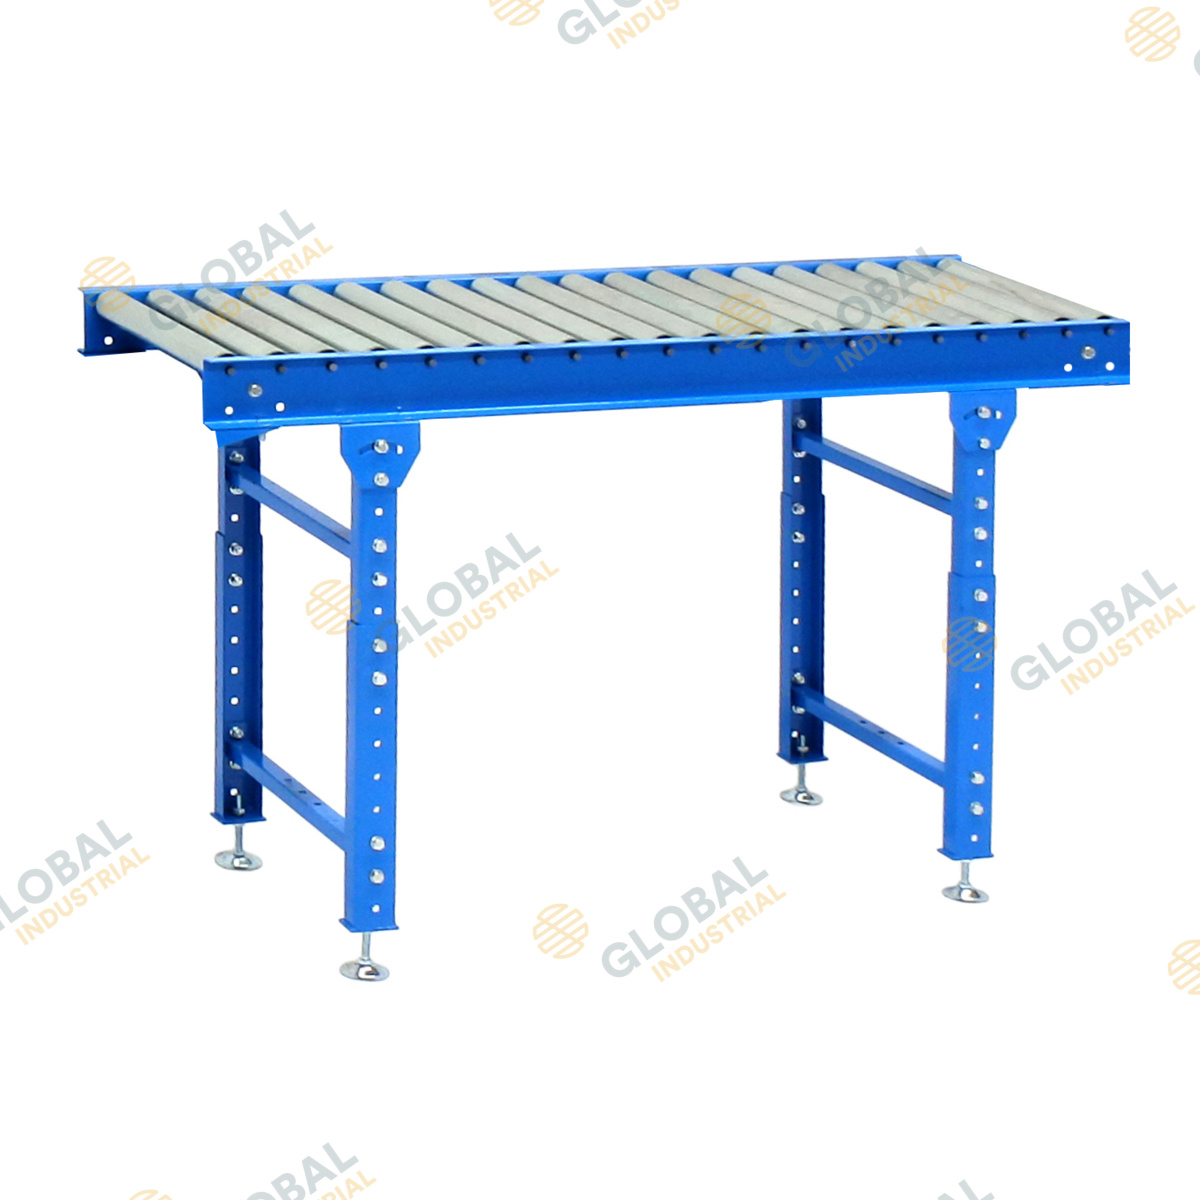 1500mm Conveyor Roller Bed with 2 legs